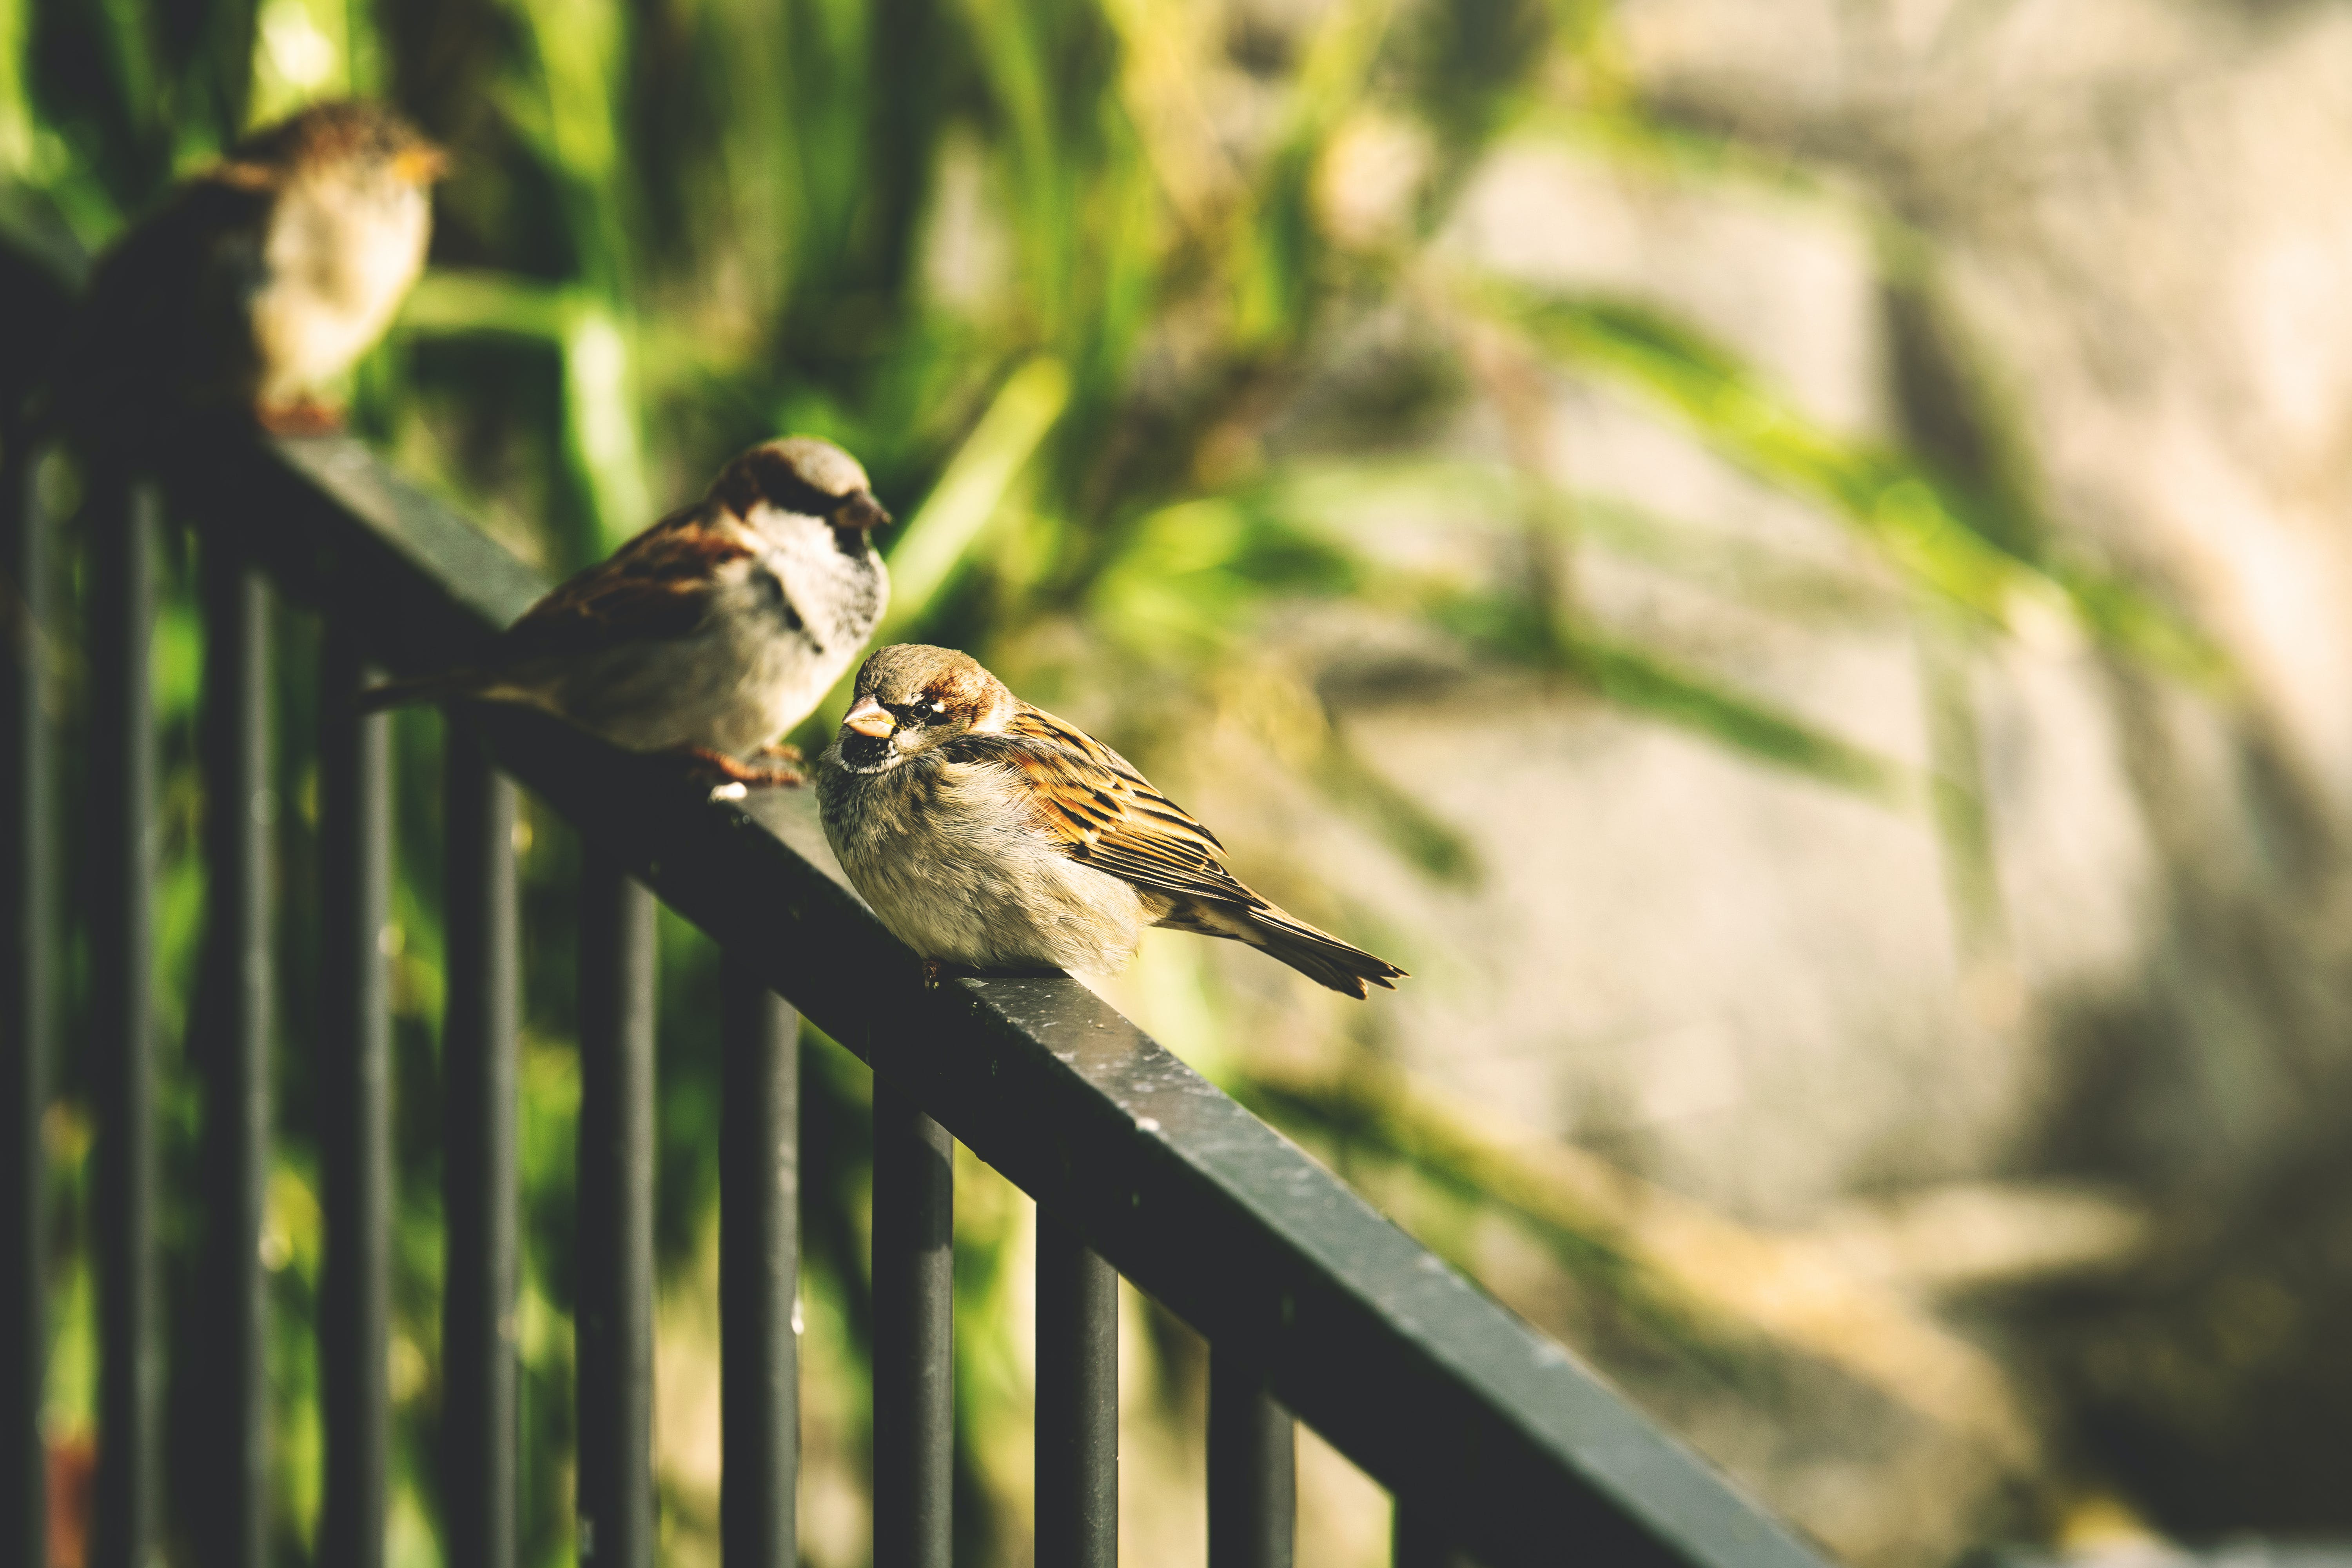 Selective Focus Photography of Two Brown Sparrows on Railings